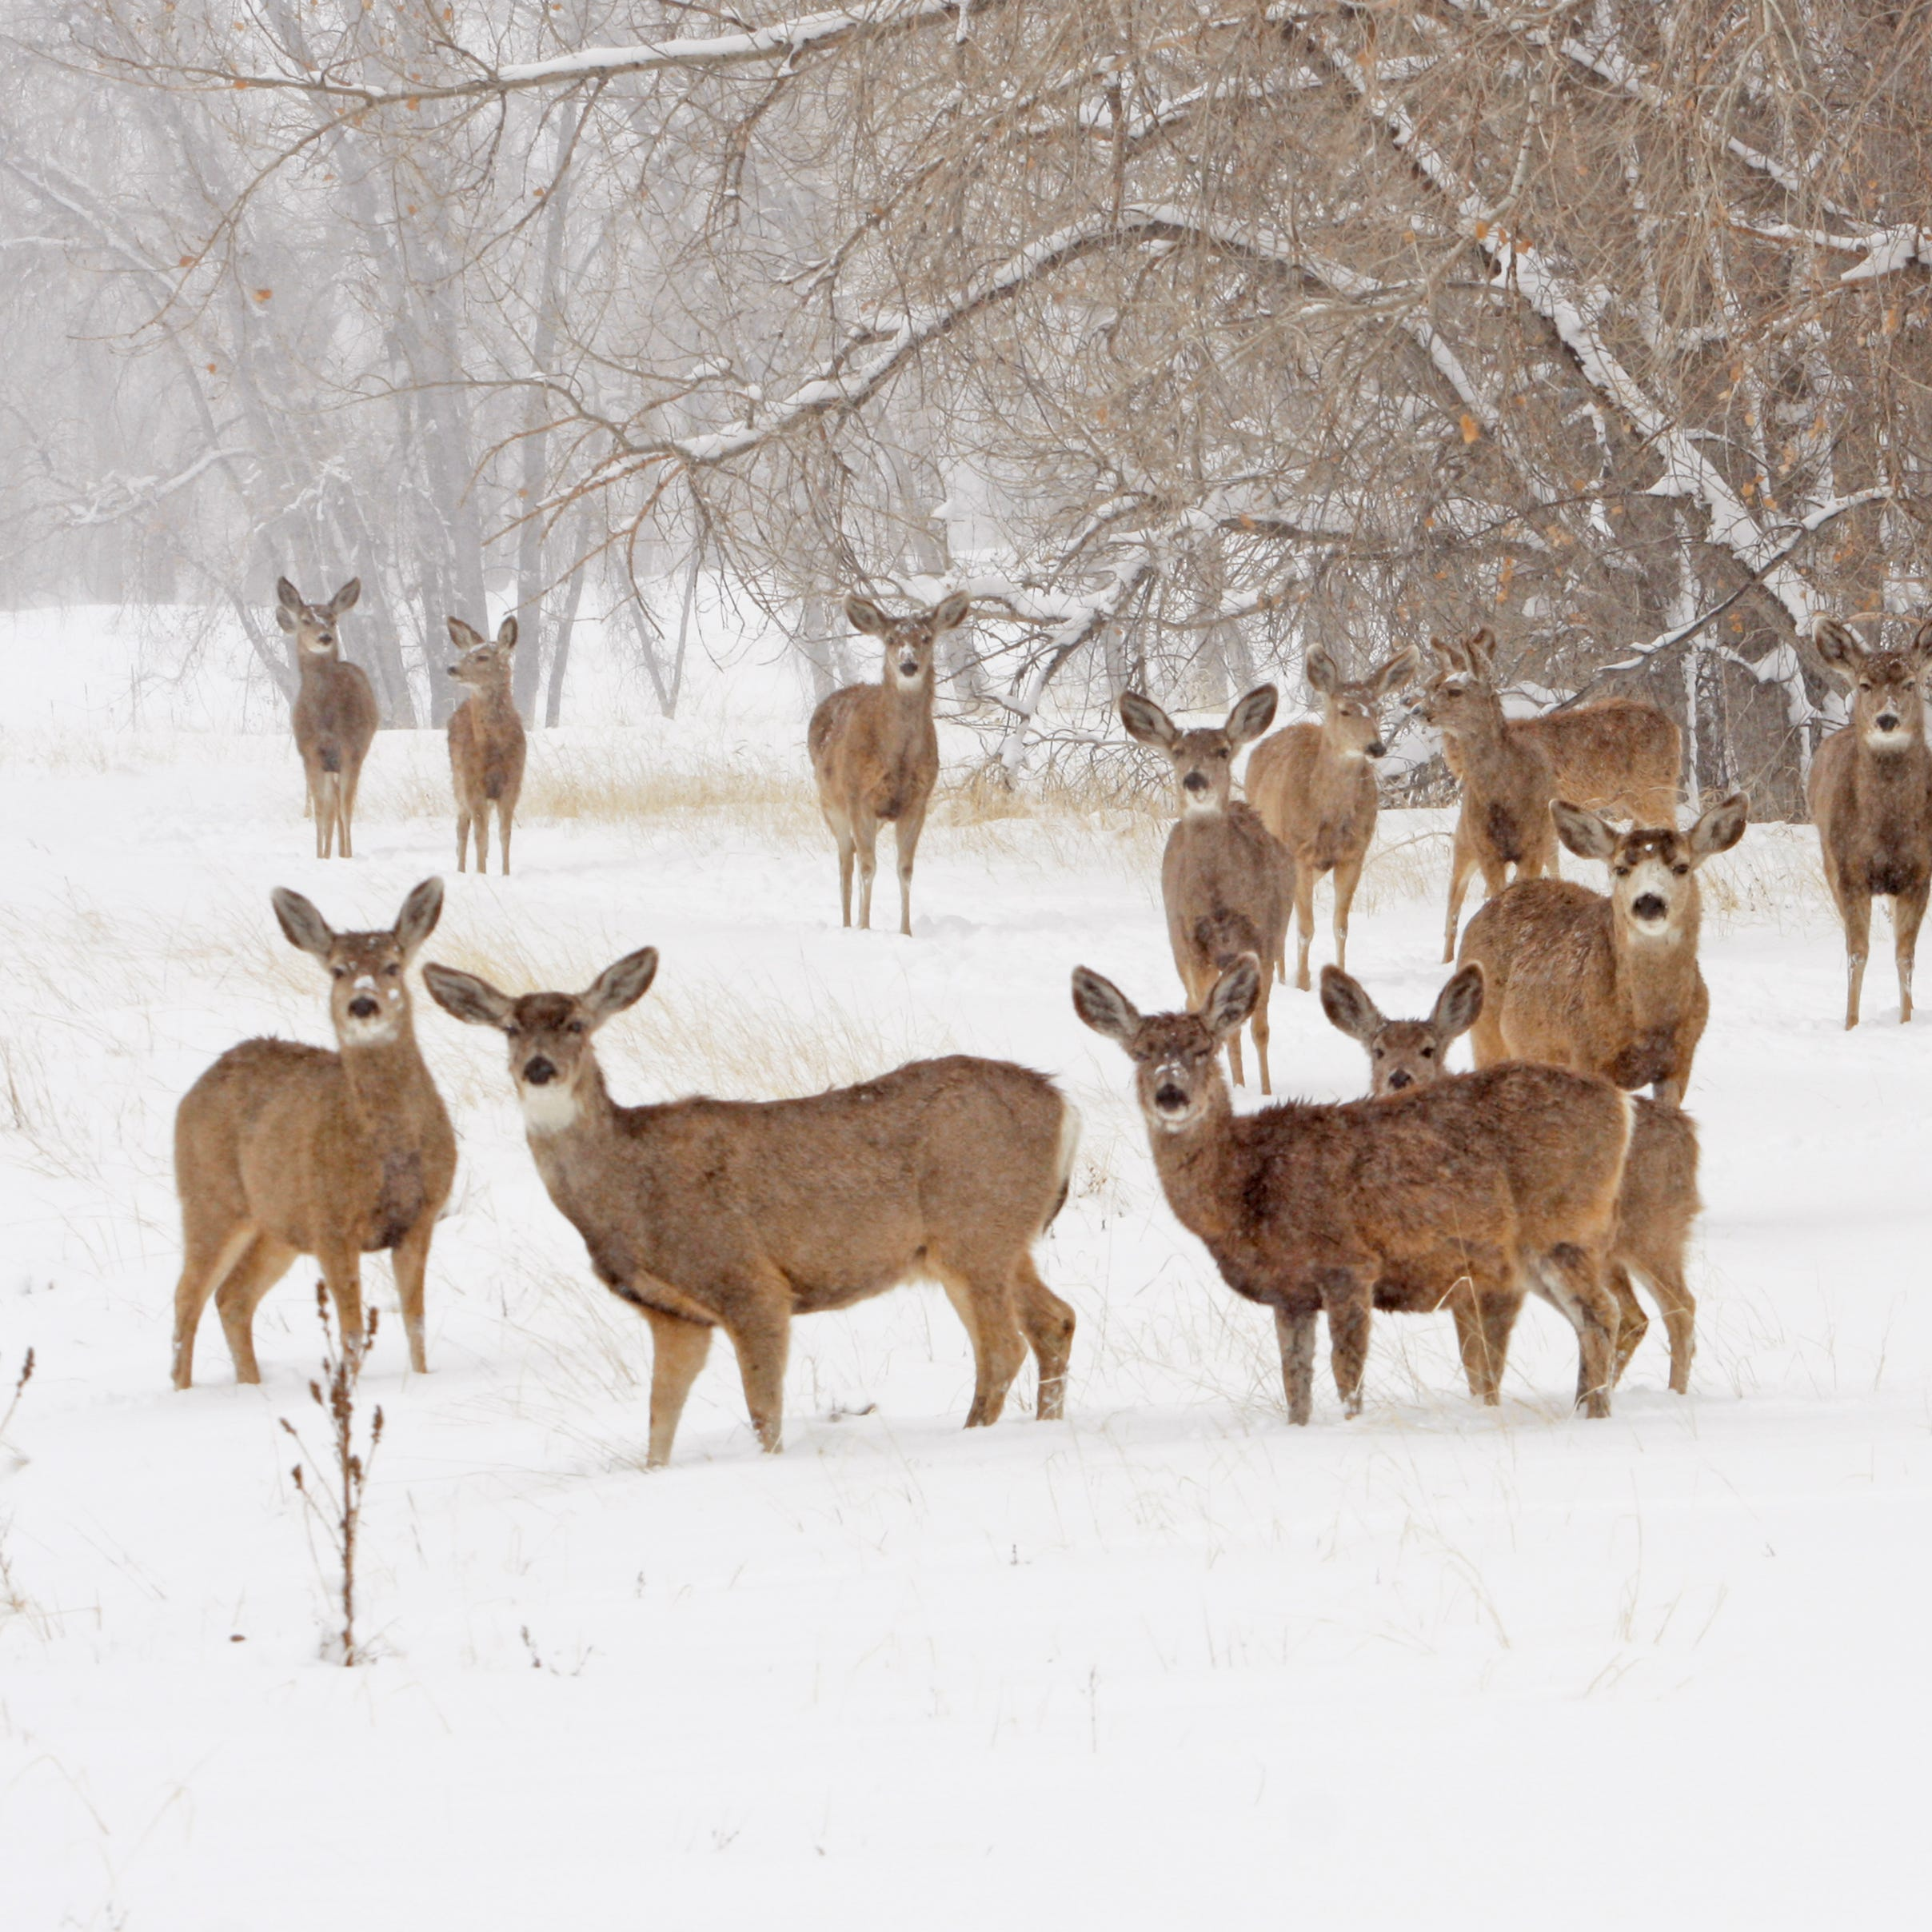 As winter slowly ends, a look at animal survival tactics